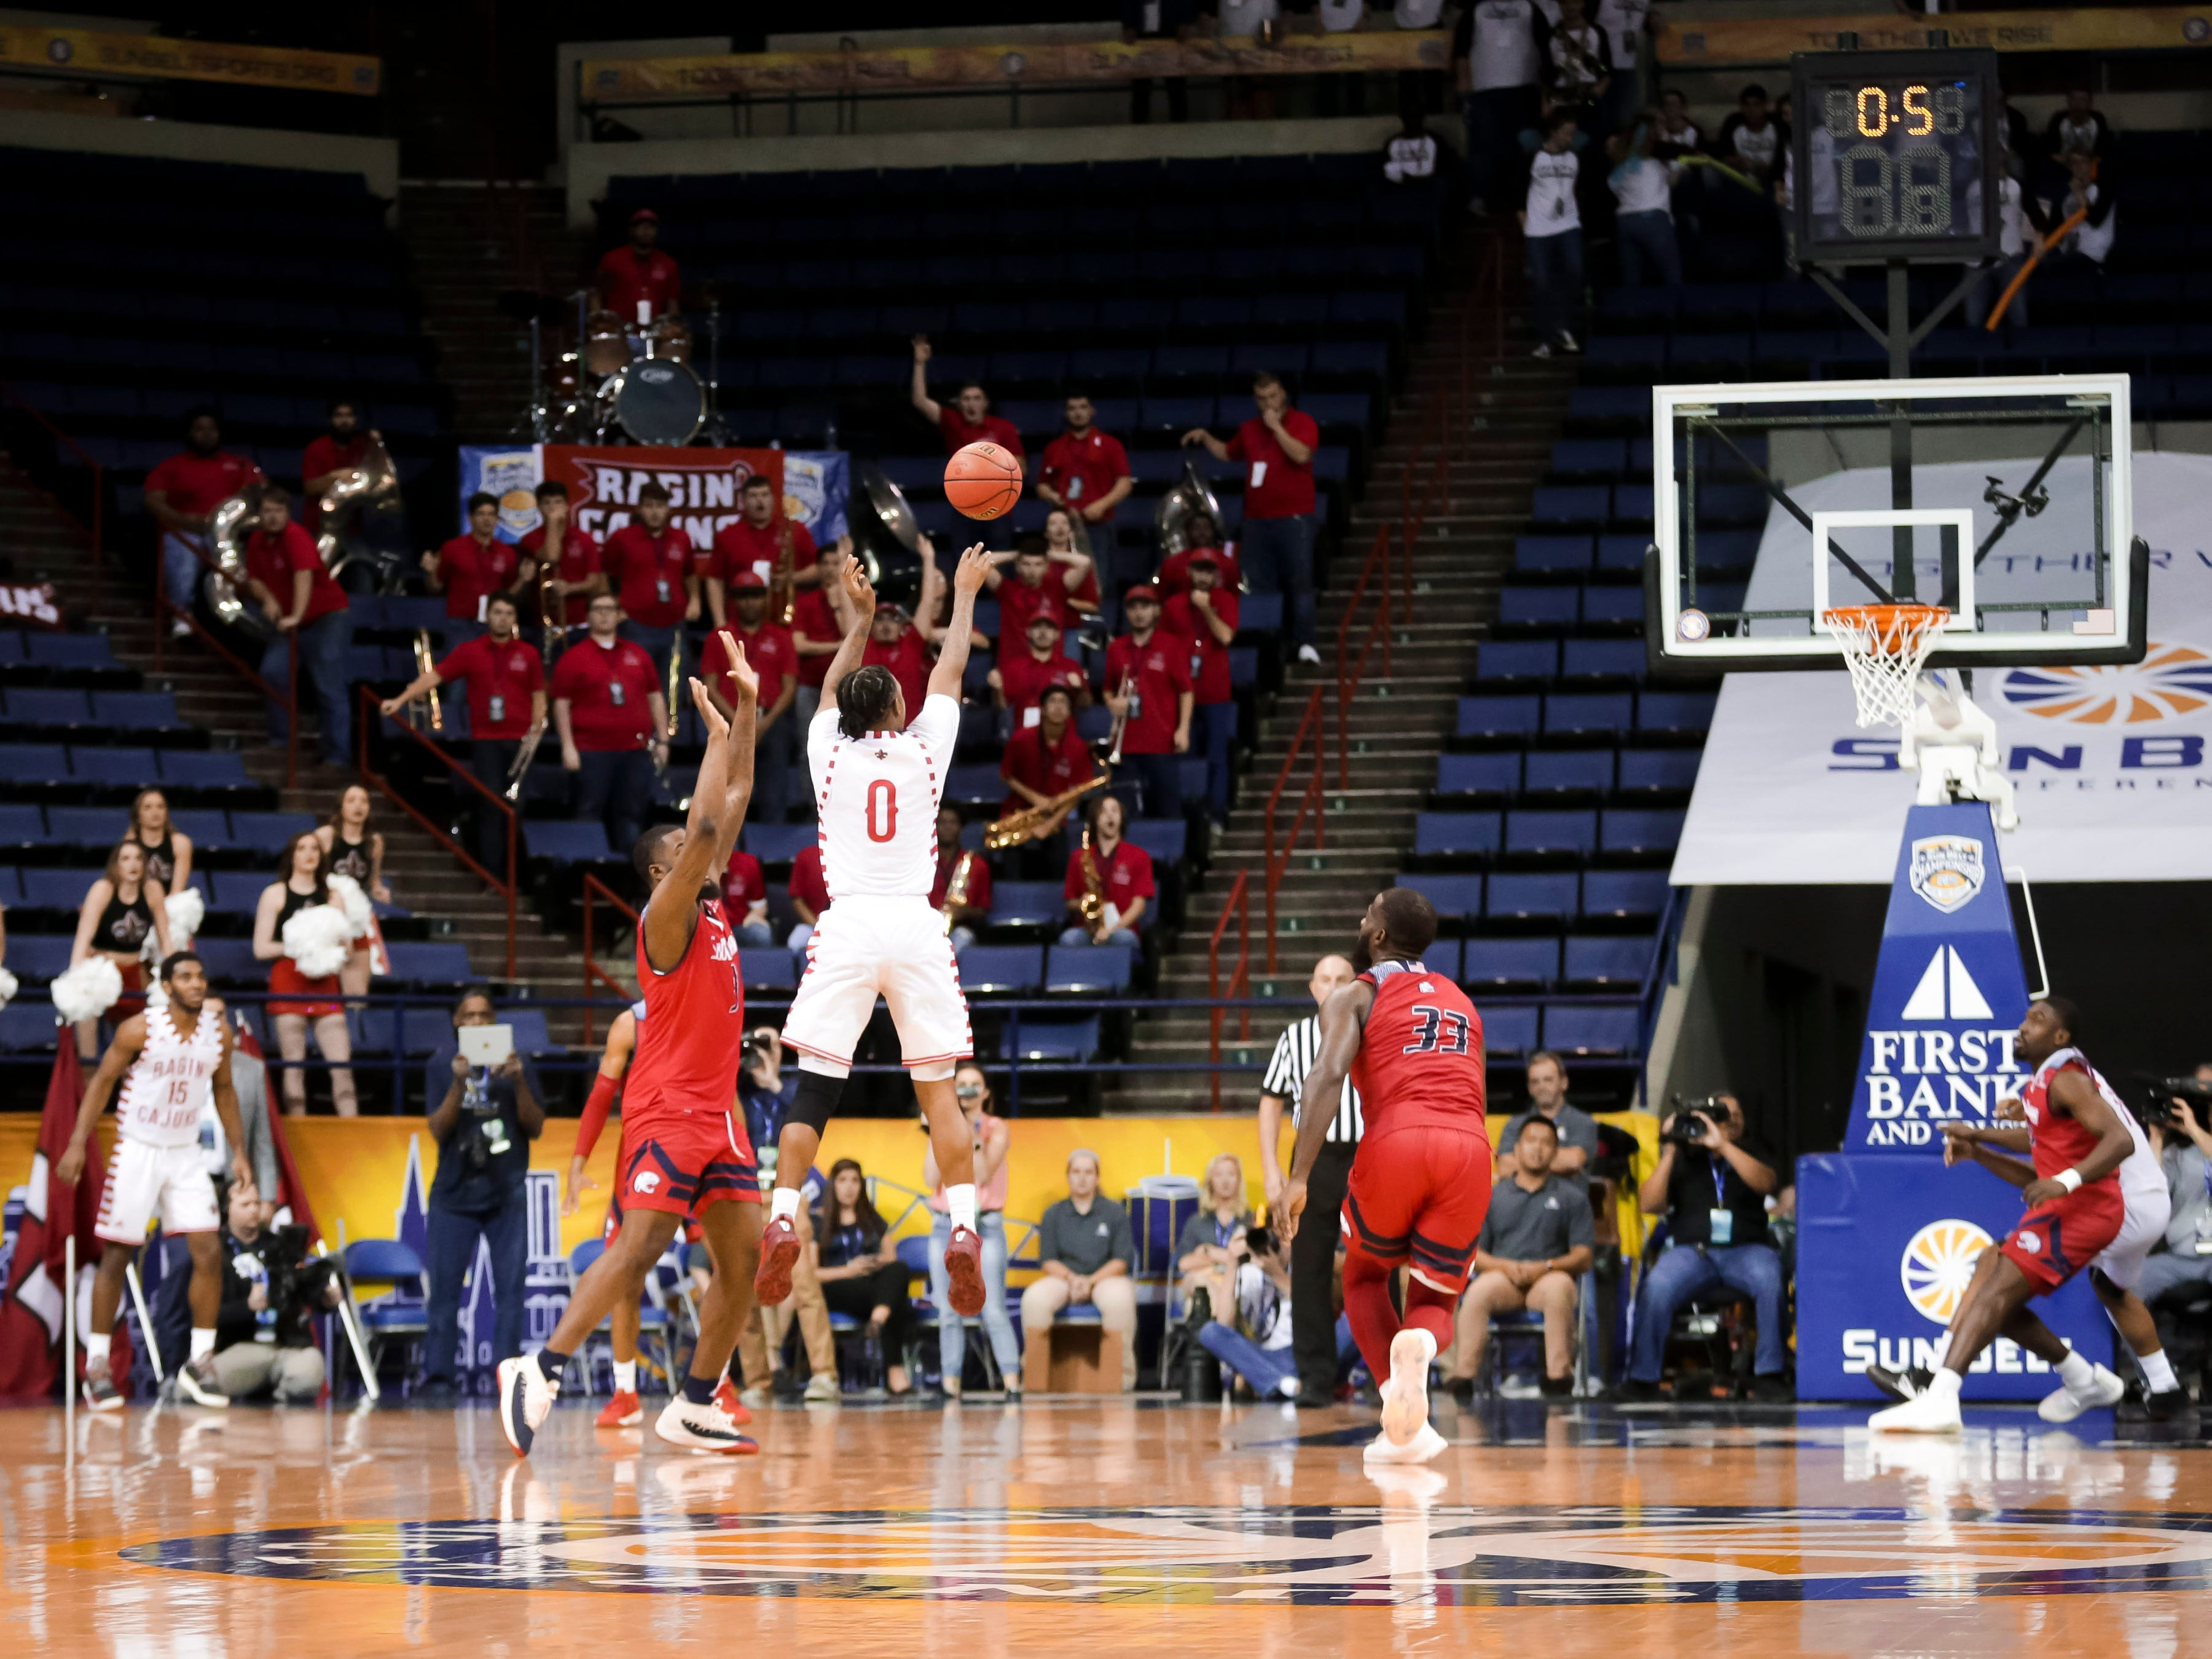 UL sophomore guard Cedric Russell puts up a shot at the buzzer, as the Ragin' Cajuns fell to South Alabama, 70-69, on Thursday at the Sun Belt Men's Basketball Championship in New Orleans.